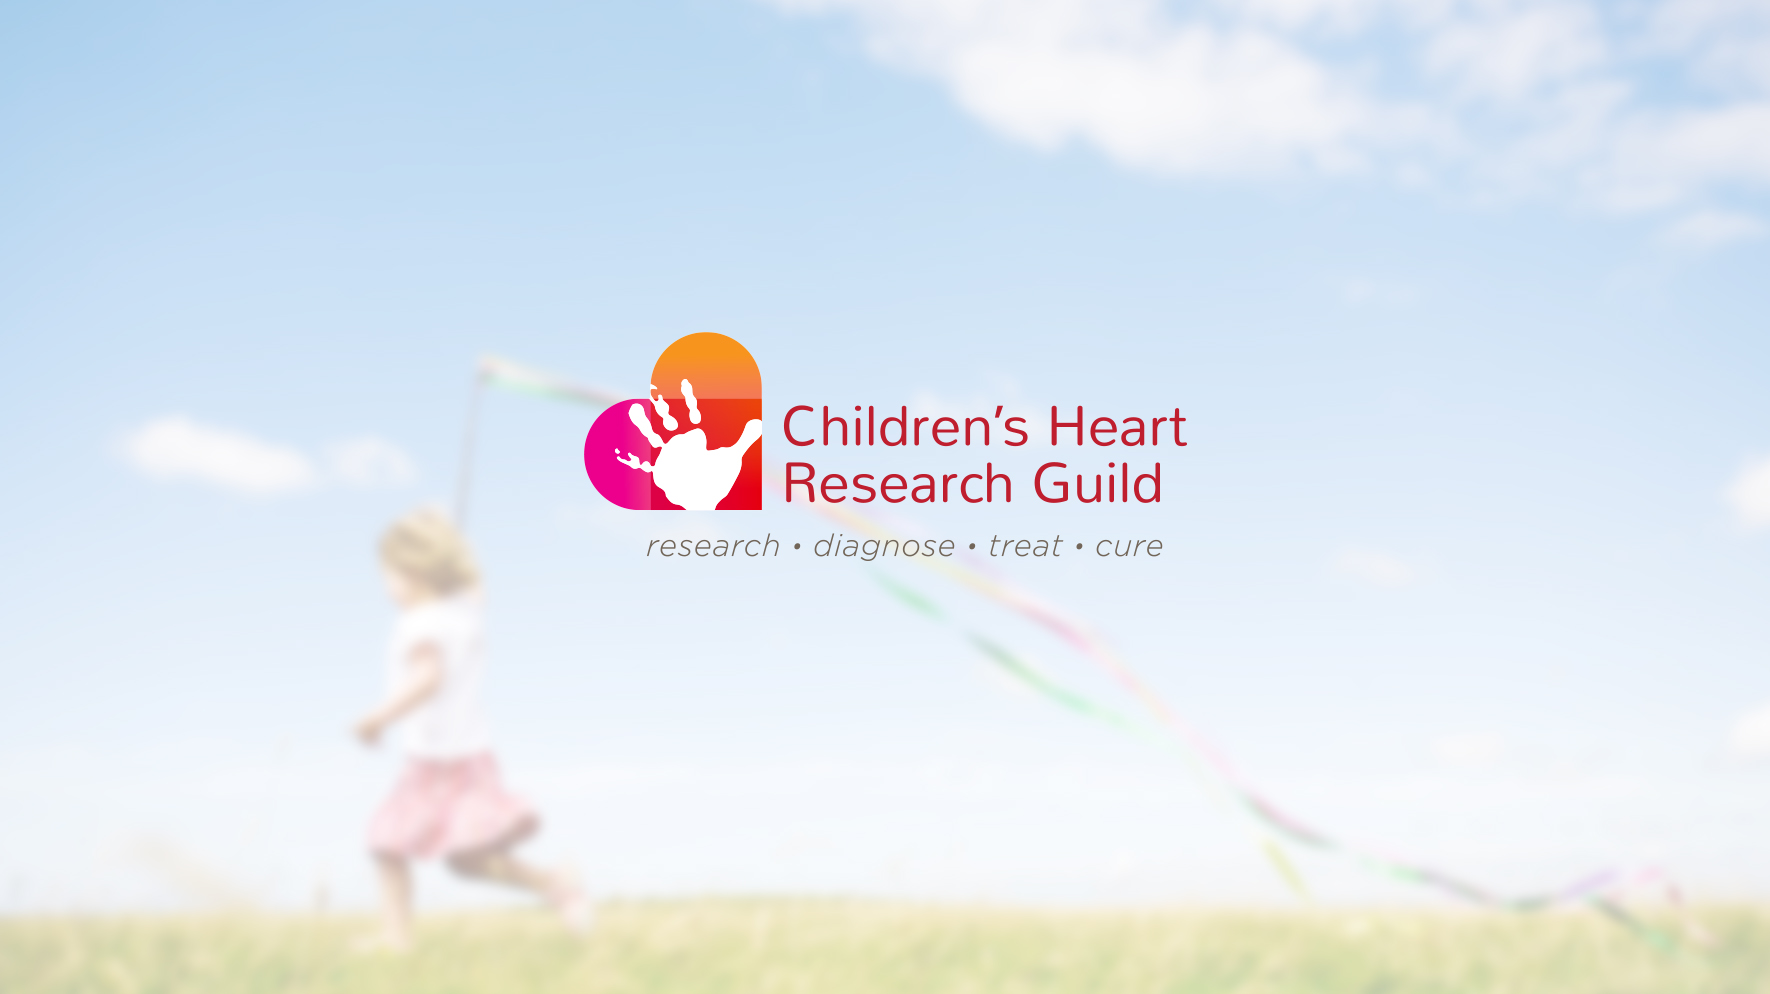 Children's Heart Research Guild Logo